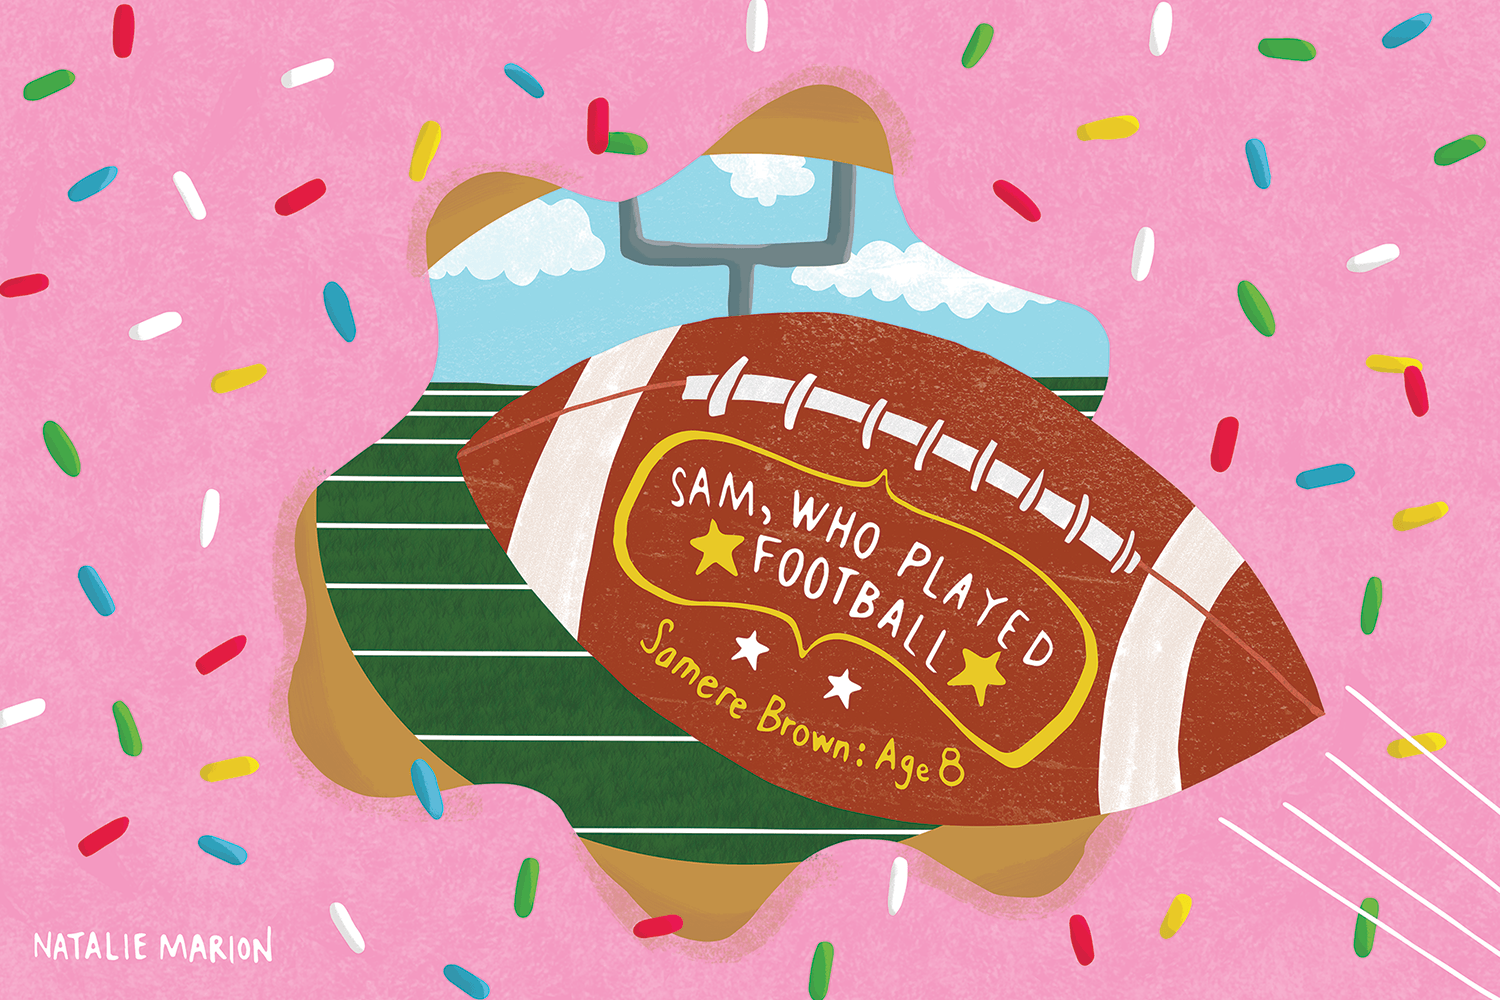 natalie-marion-826michigan-student-writing-donut-football-illustration.png